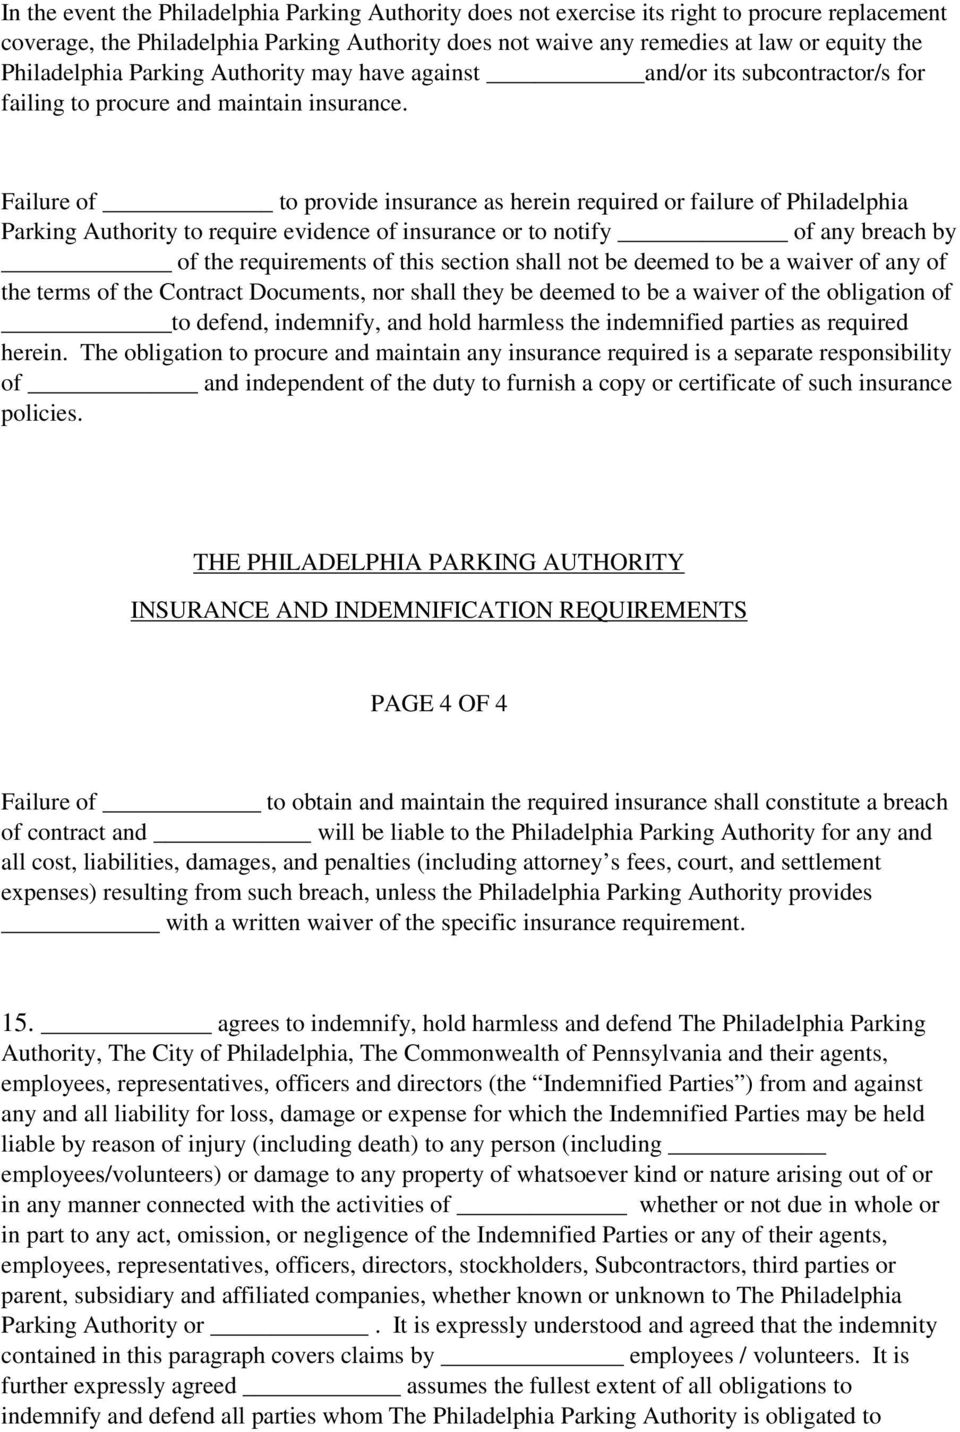 Failure of to provide insurance as herein required or failure of Philadelphia Parking Authority to require evidence of insurance or to notify of any breach by of the requirements of this section